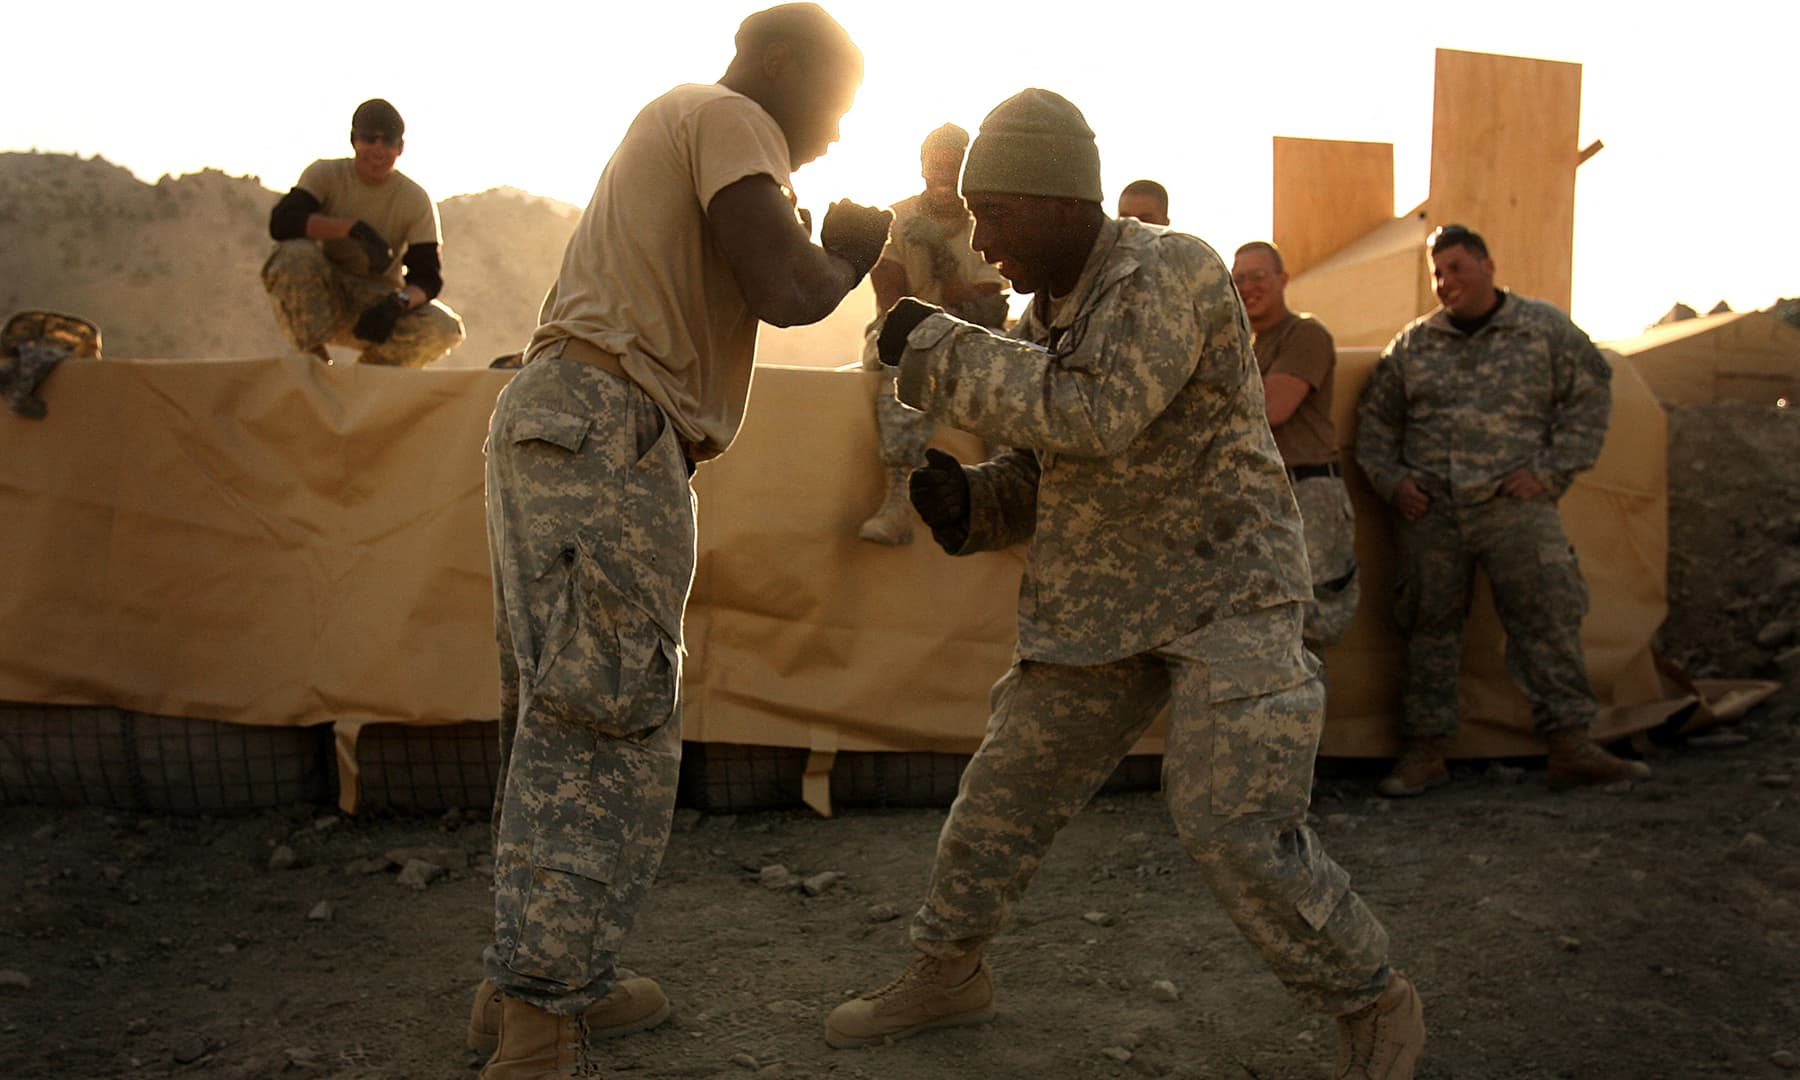 In this file photo taken on November 26, 2006, US soldiers from 2nd Platoon, Alpha Company, 3rd Brigade Special Troops Battalion, 10th Mountain Division, practice some boxing techniques at Firebase Wilderness in Paktia province. — AFP